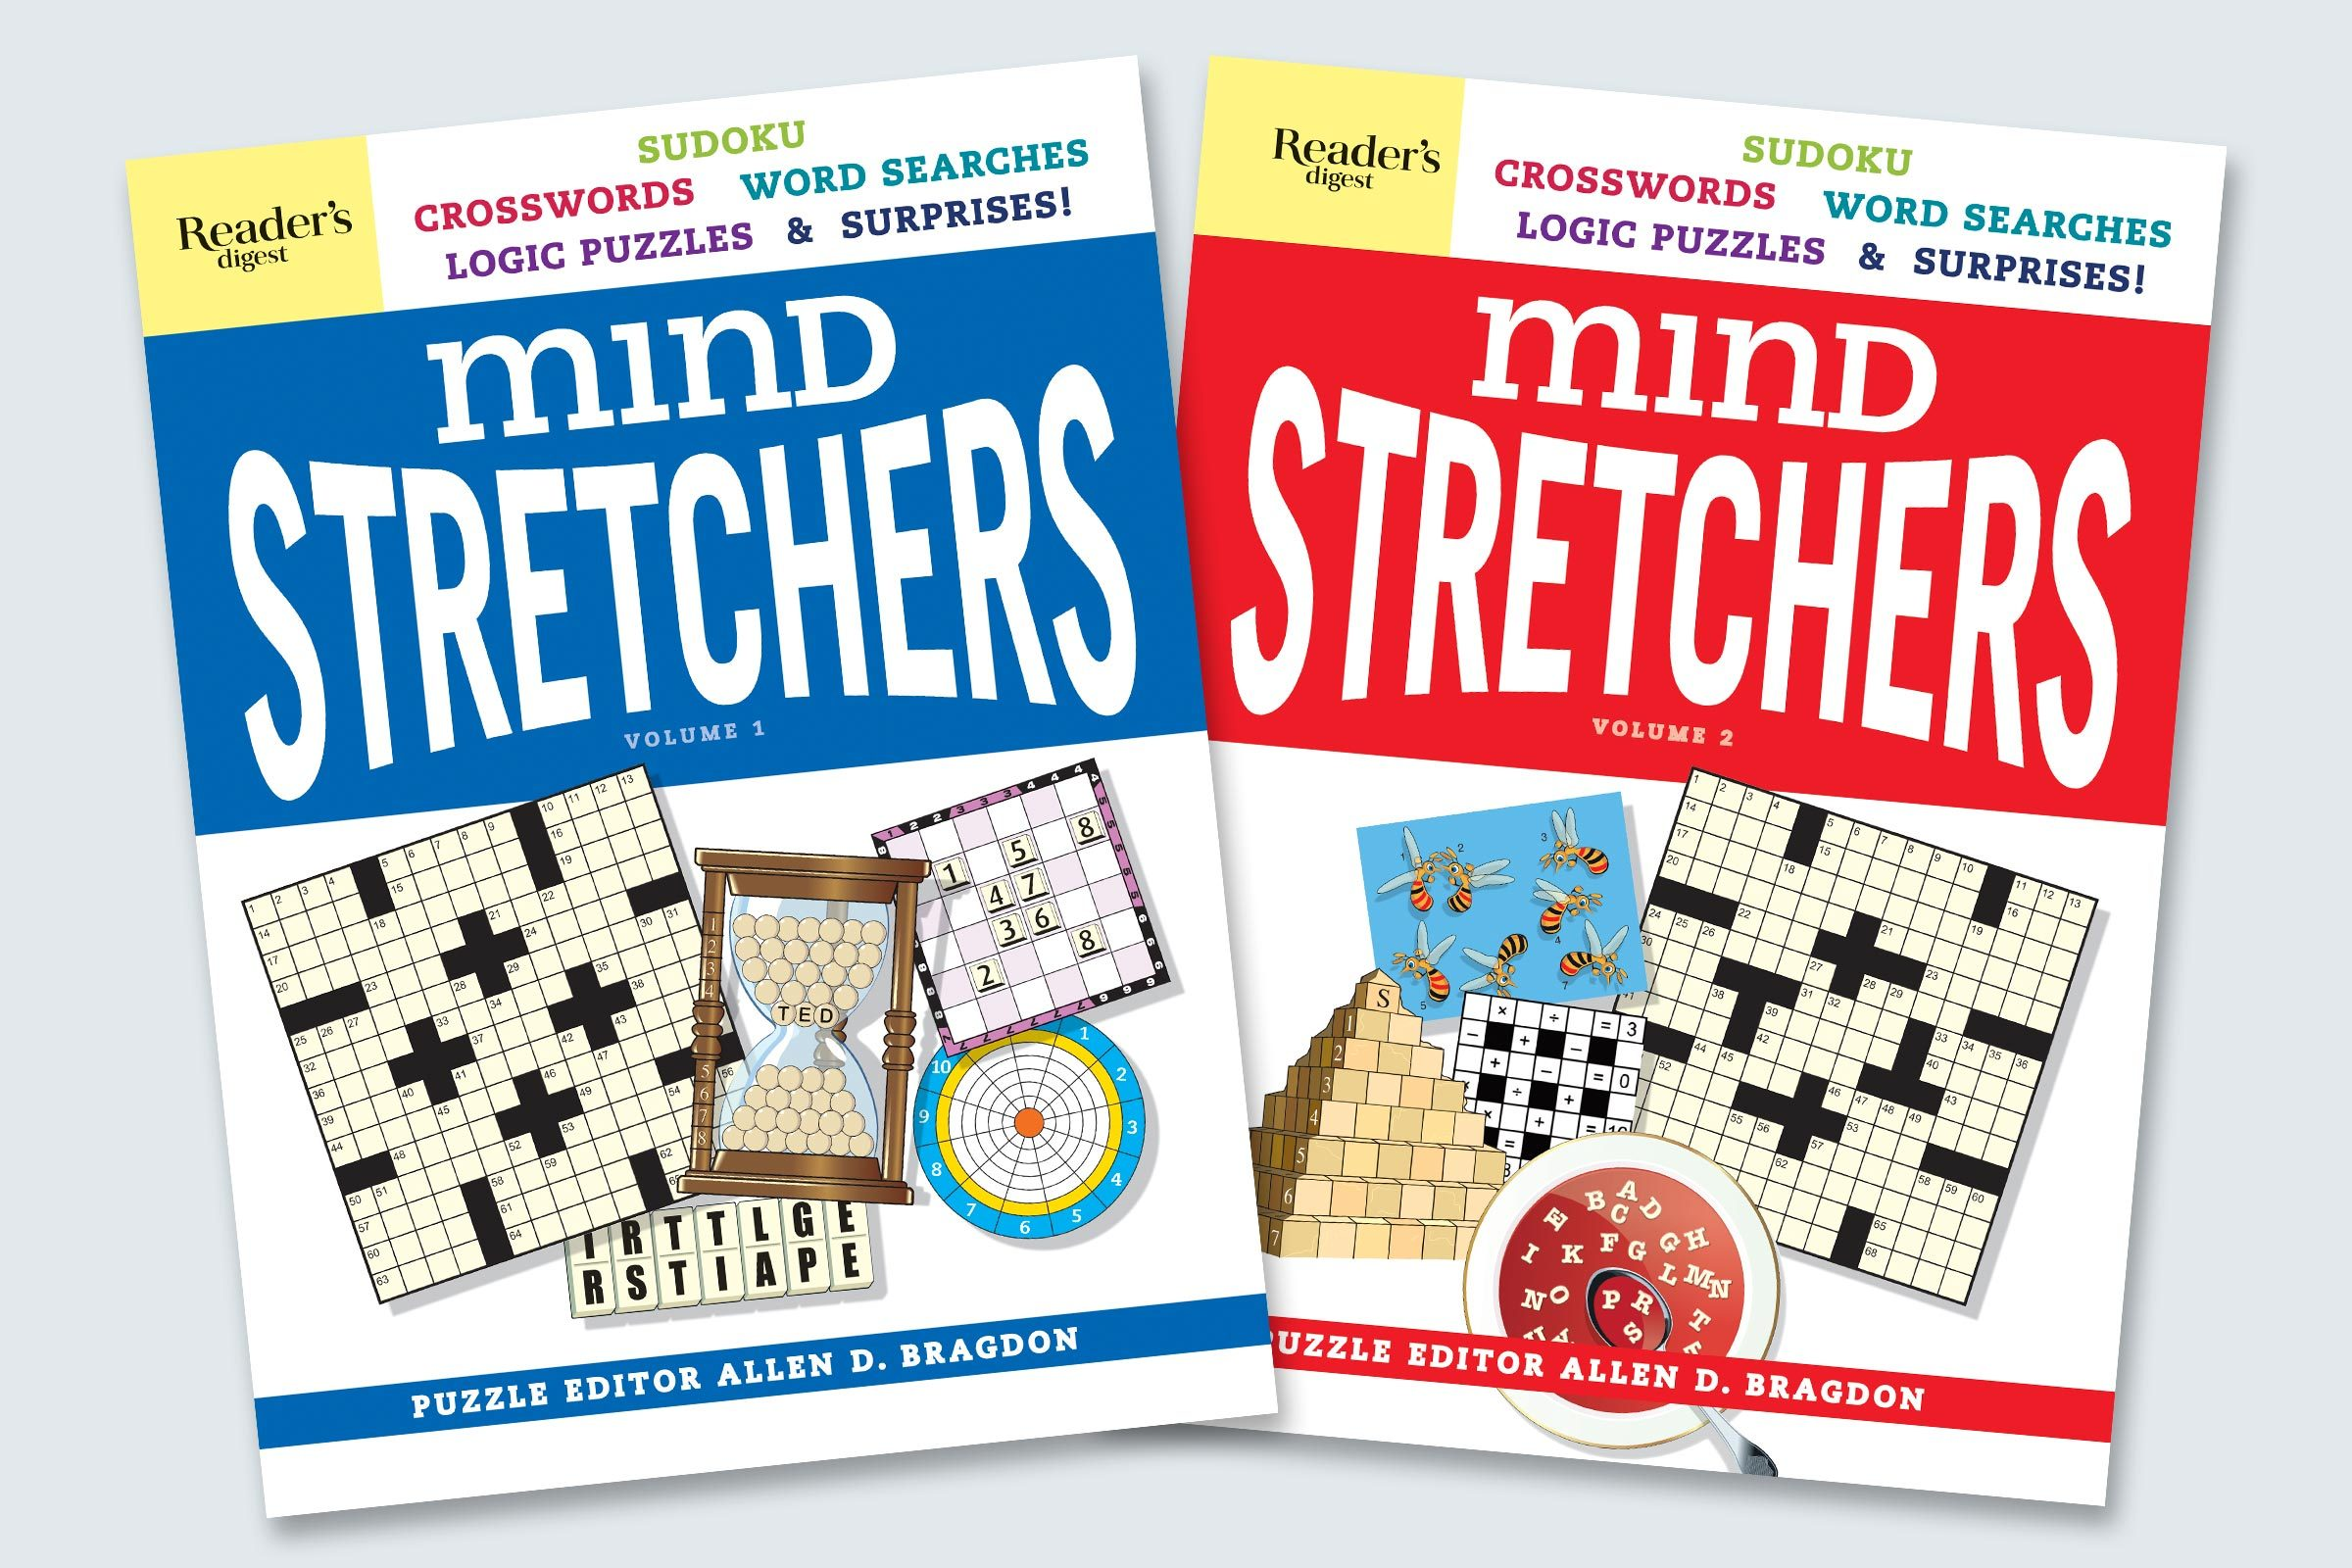 mind stretchers covers vol 1 and vol 2